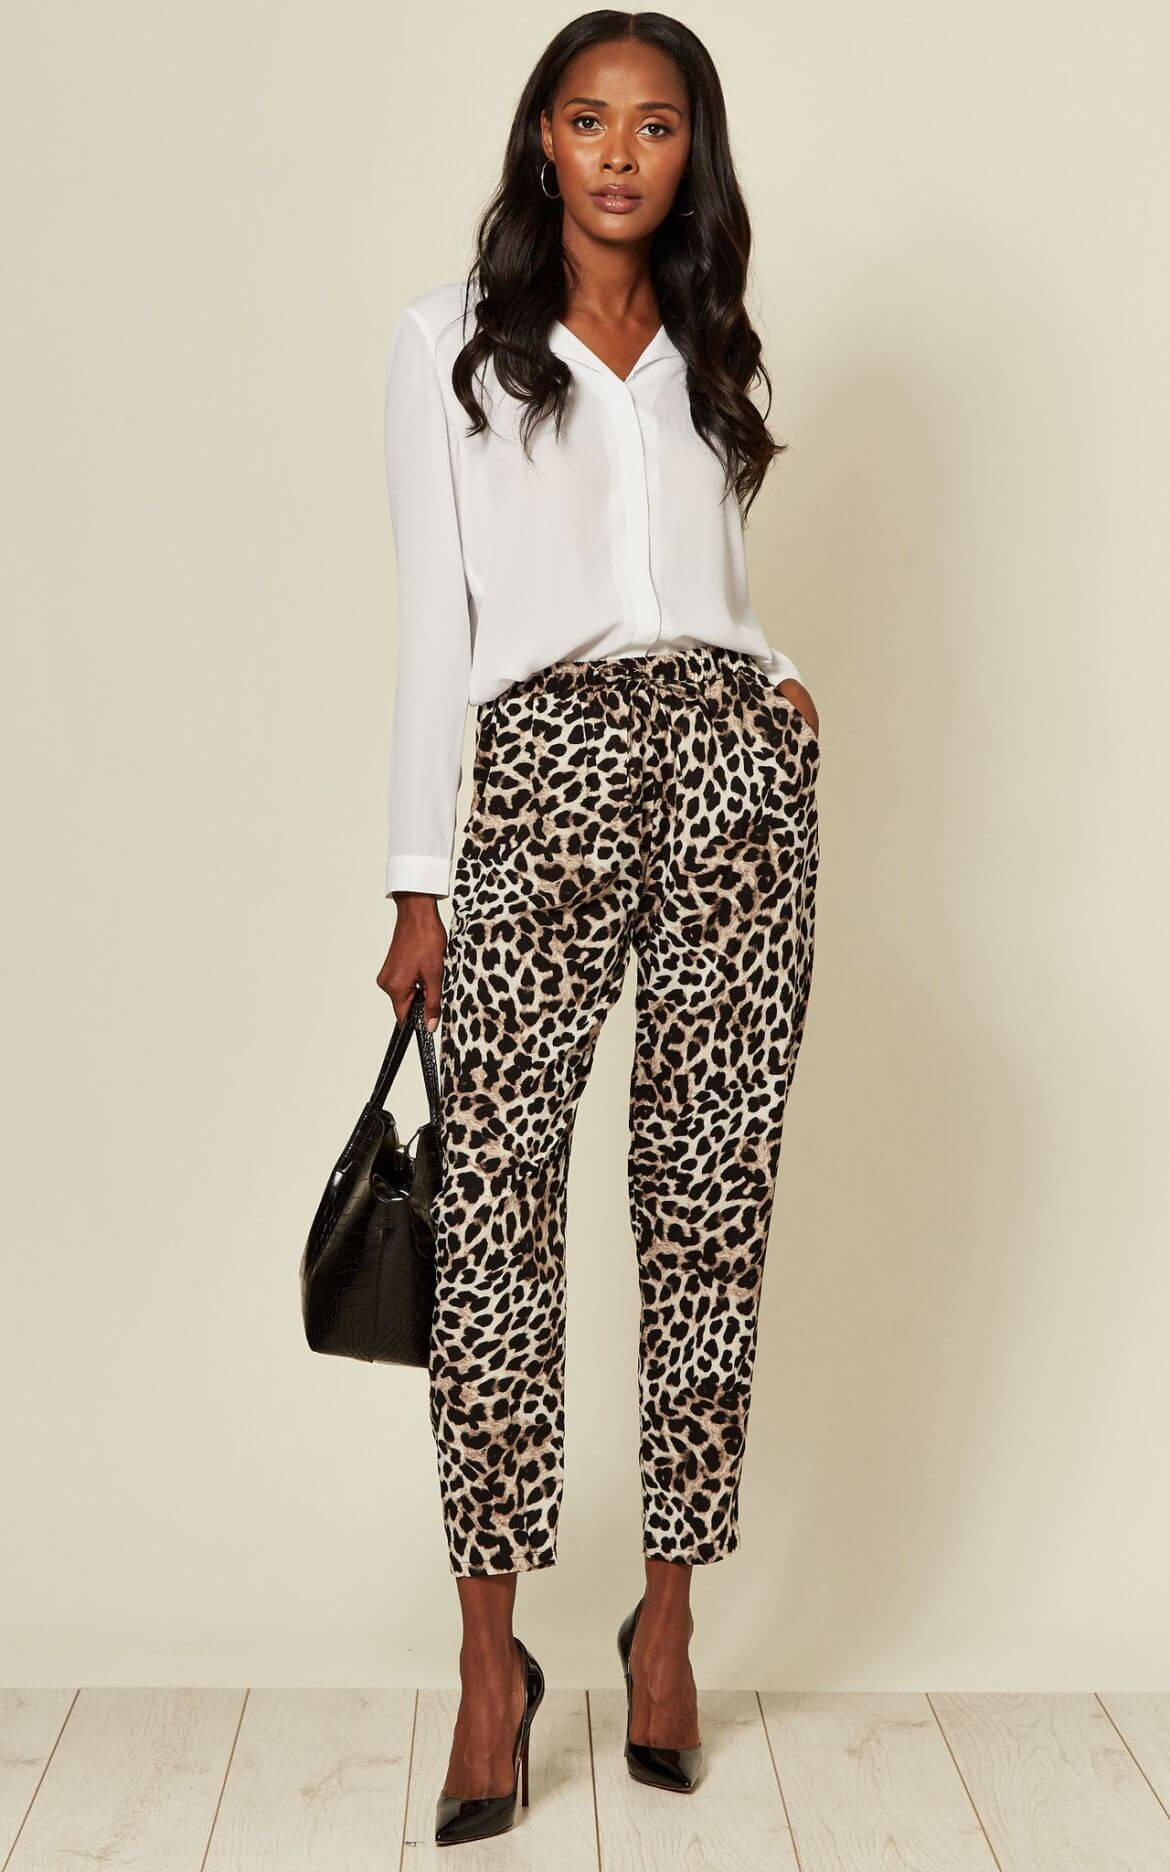 model wears smart shirt and leopard print trousers